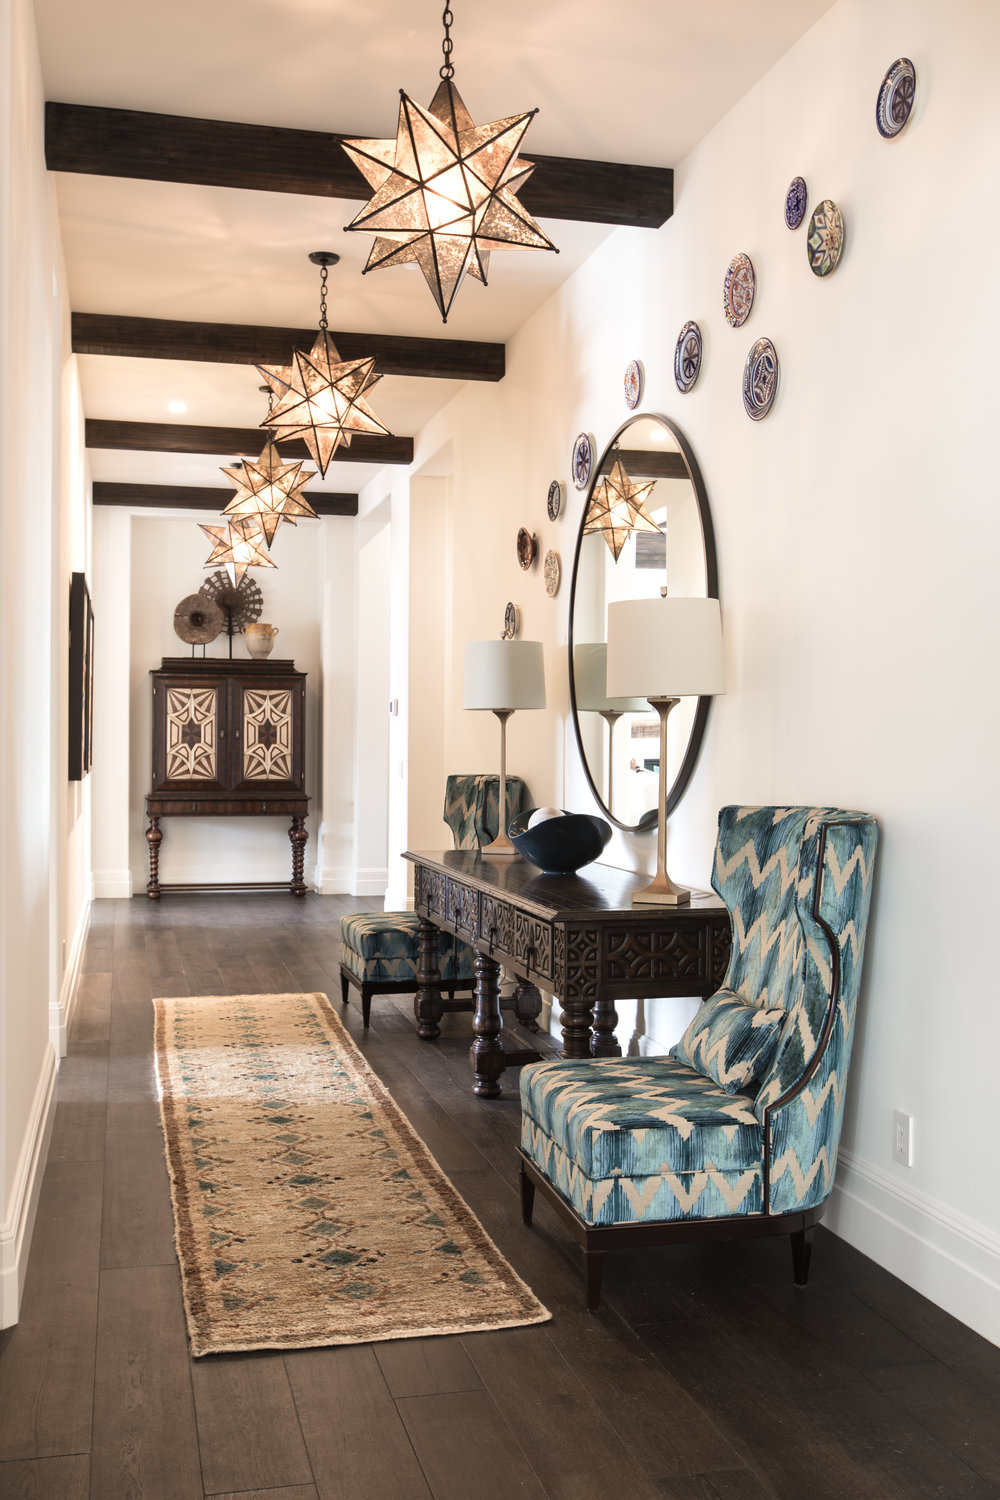 Hilltop Hacienda by Denise Morrison Interiors, Main Floor Hallway